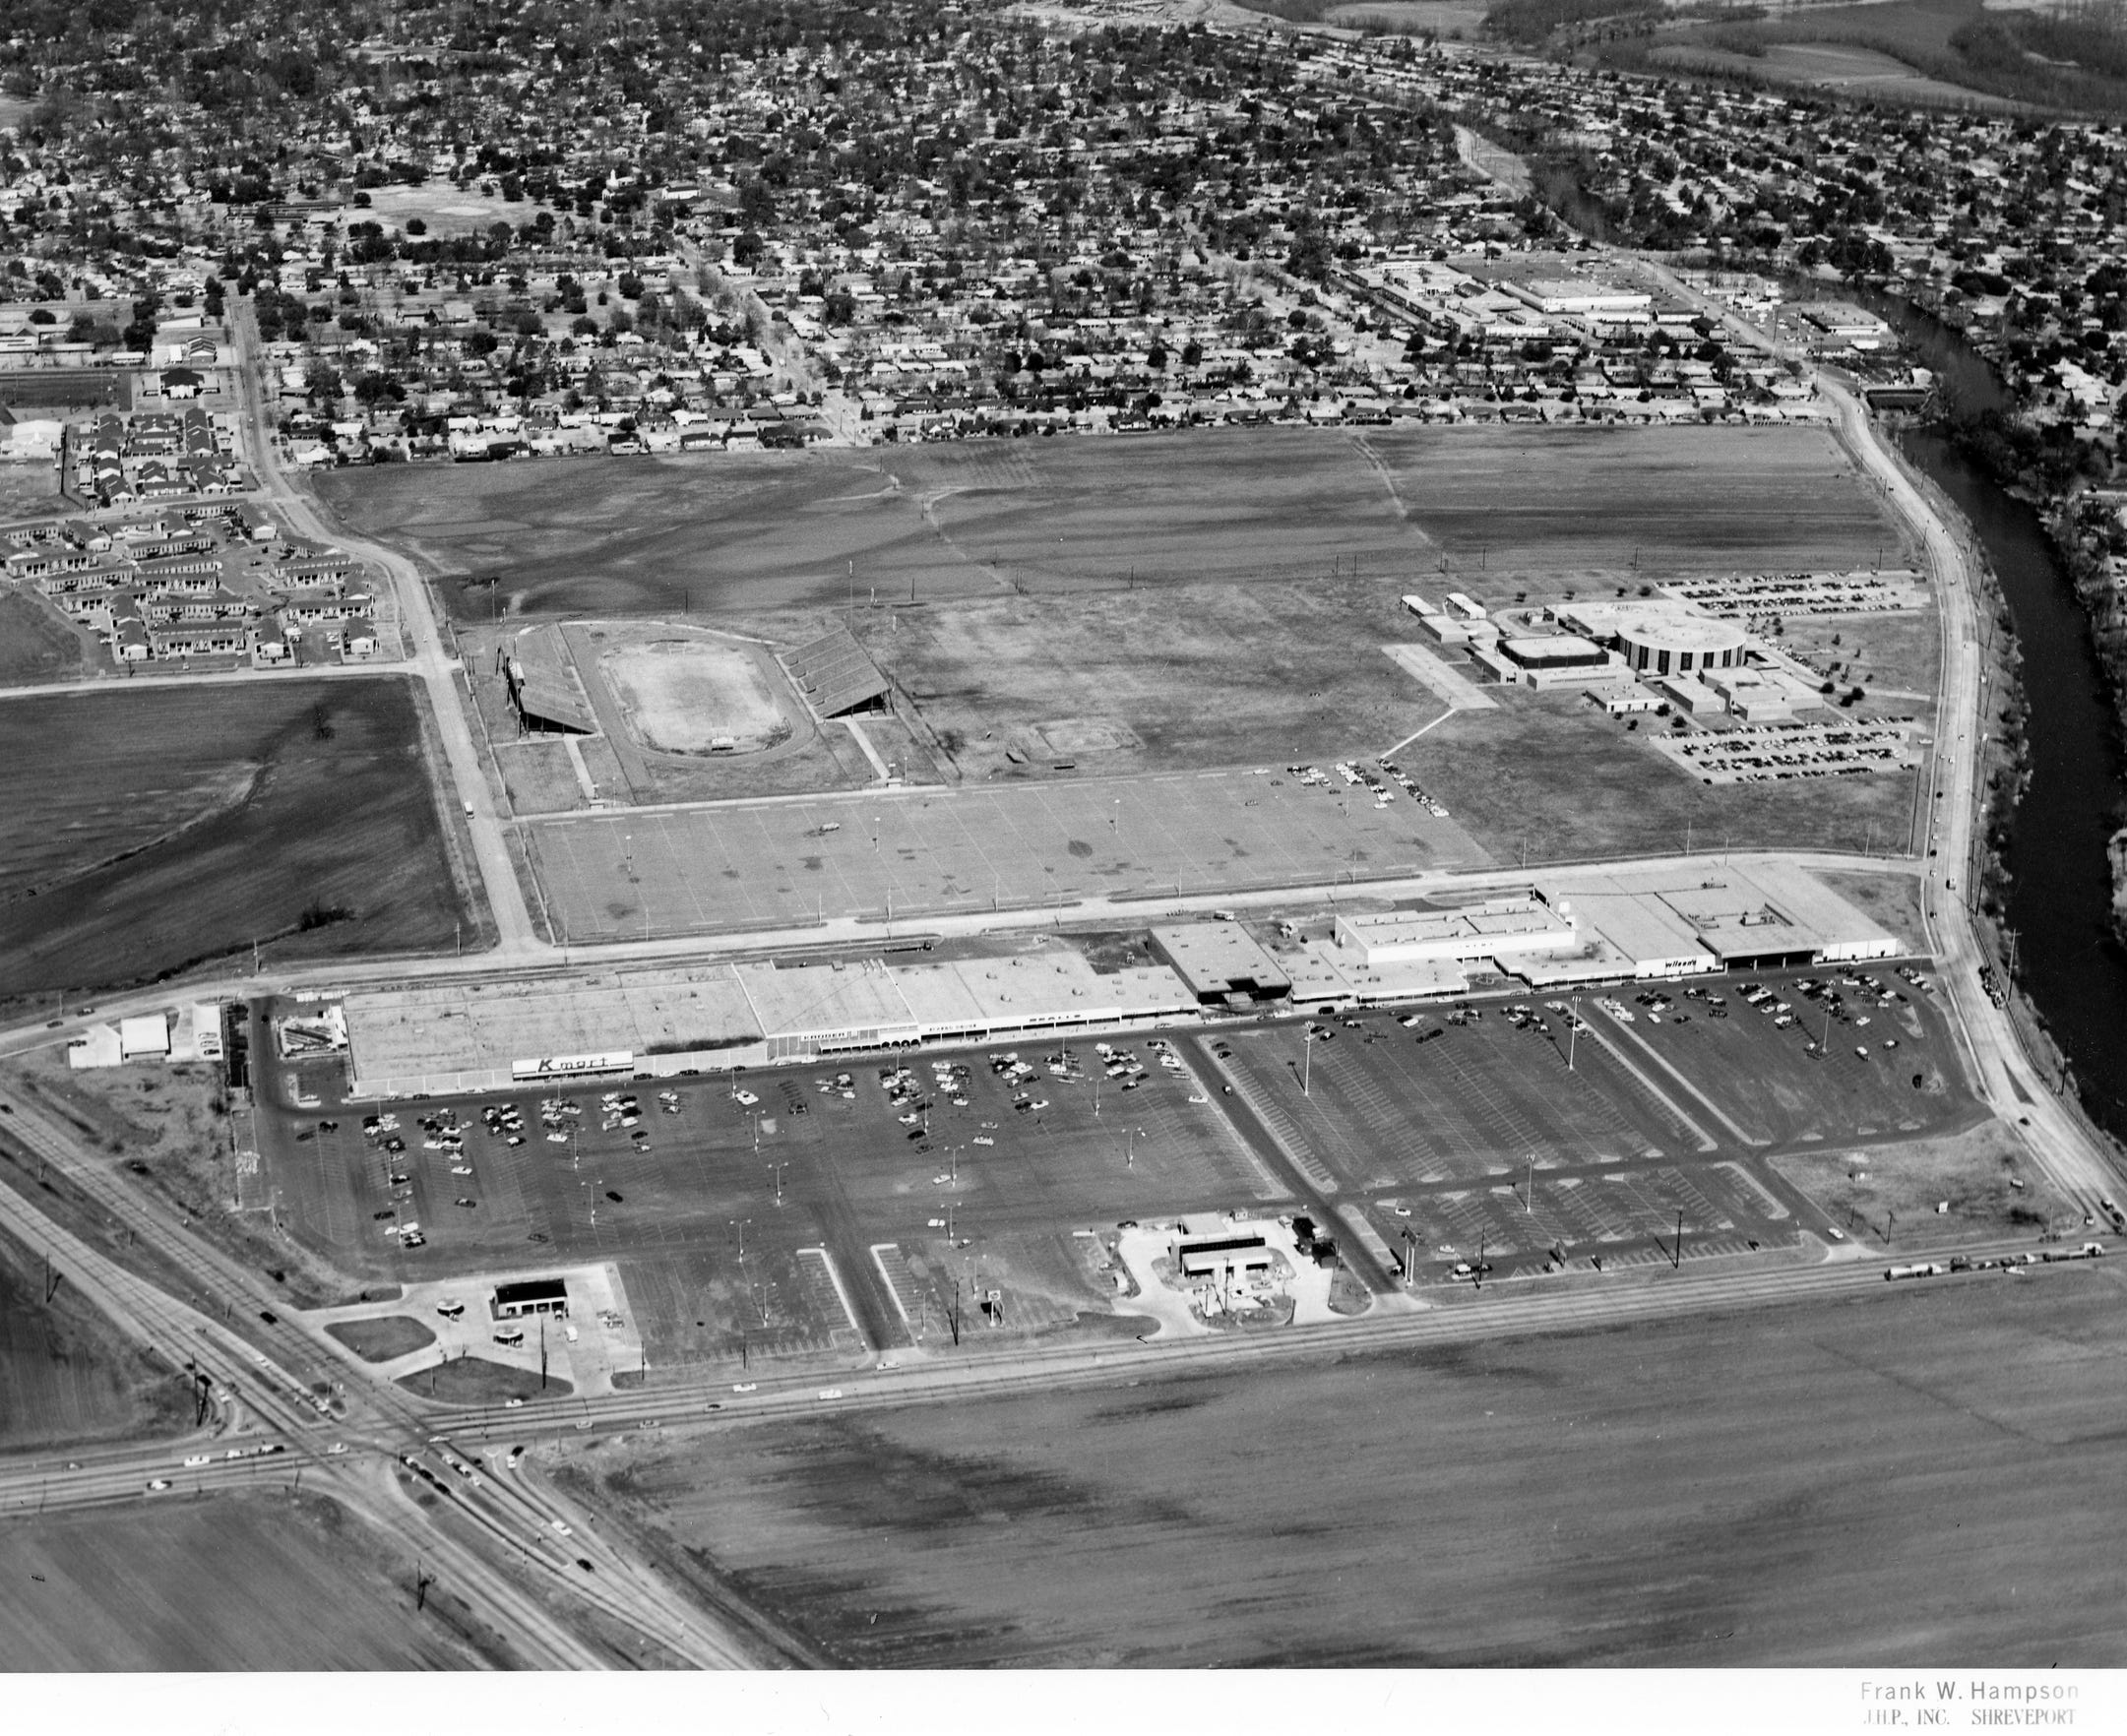 An aerial photograph of the Eastgate Shopping Center and Captain Shreve High School in the late 1970s. The shopping center opened in 1975 with a K-Mart, Kroger, Wilson's, Bealls, Eckerd's and movie theater.